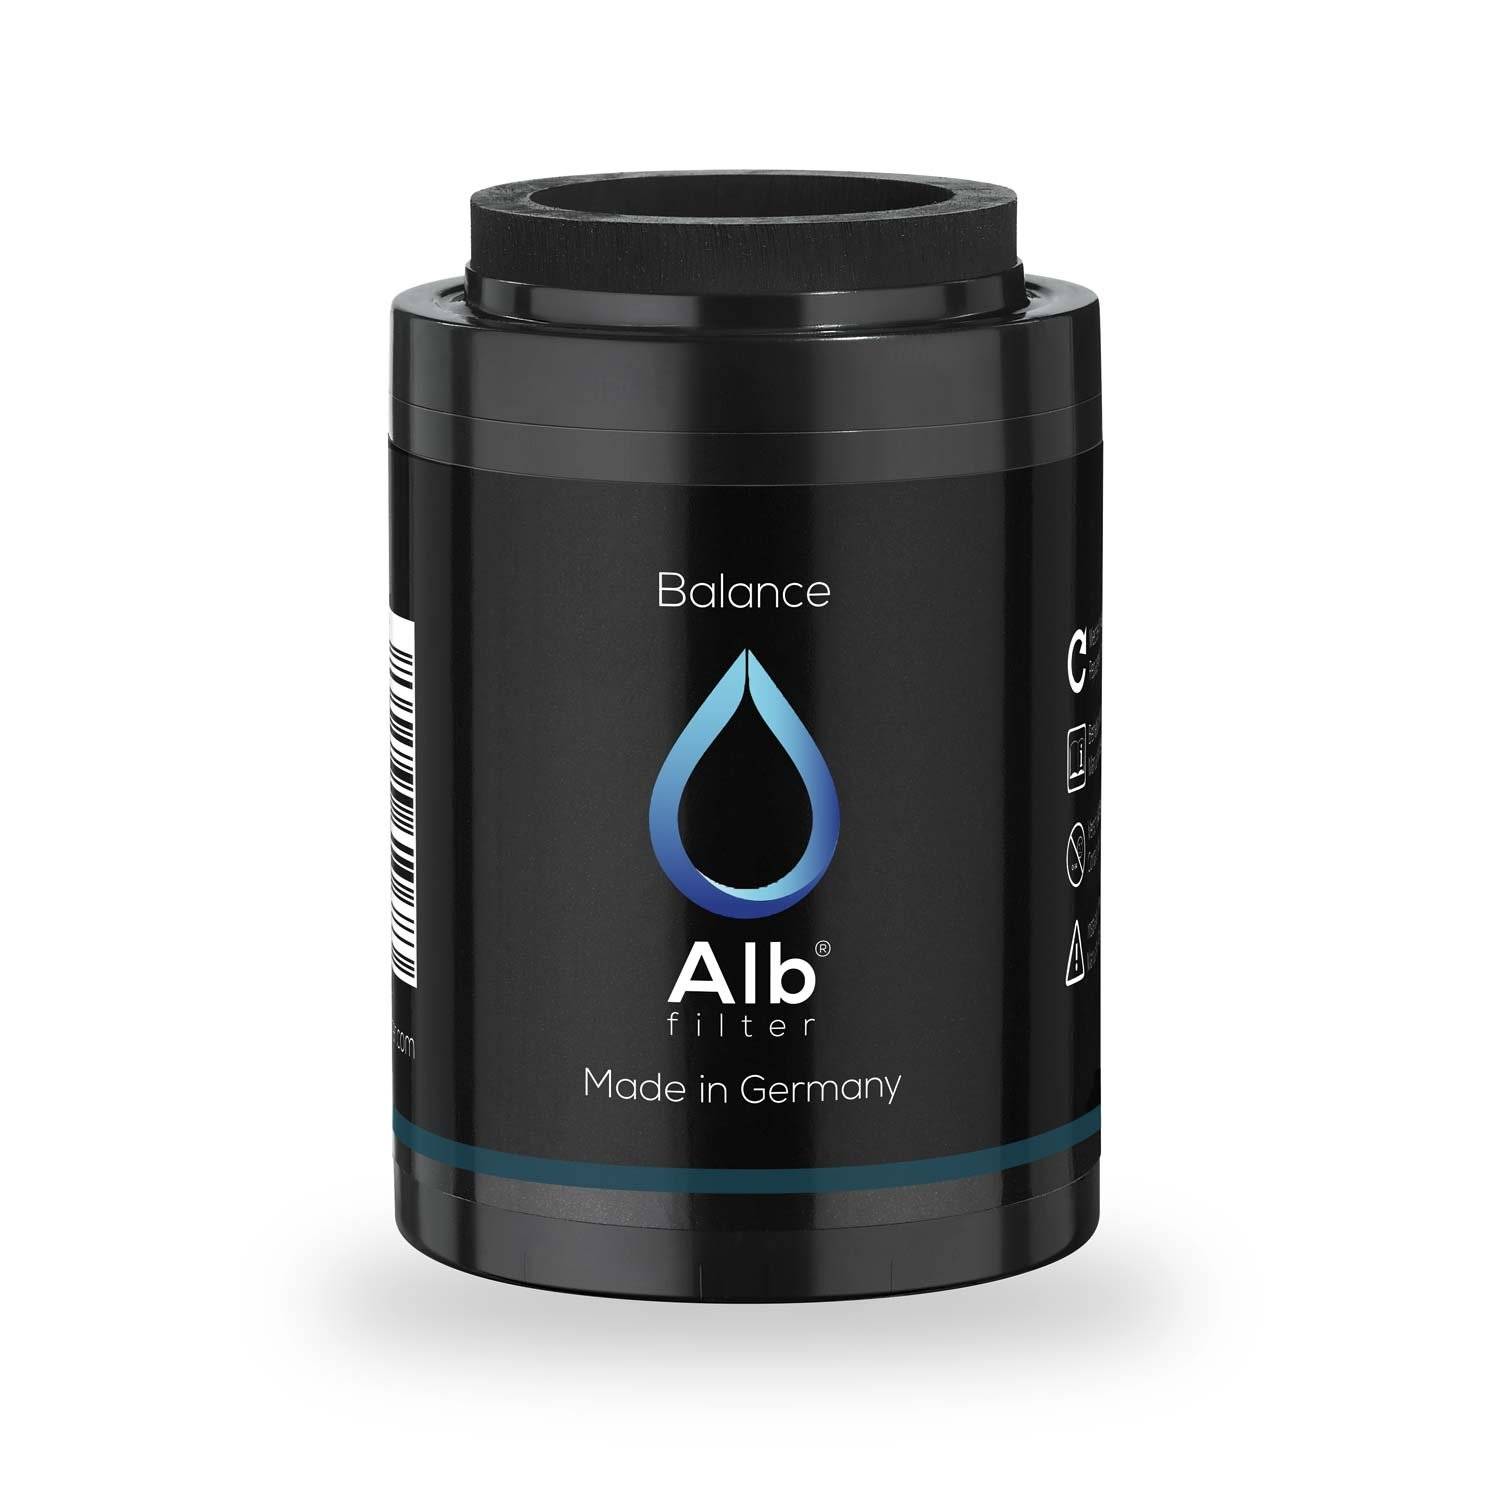 Alb Filter Balance Shower Filter Replacement Cartridge for Healthy Skin and Hair Reduces harmful substances. Made in Germany.